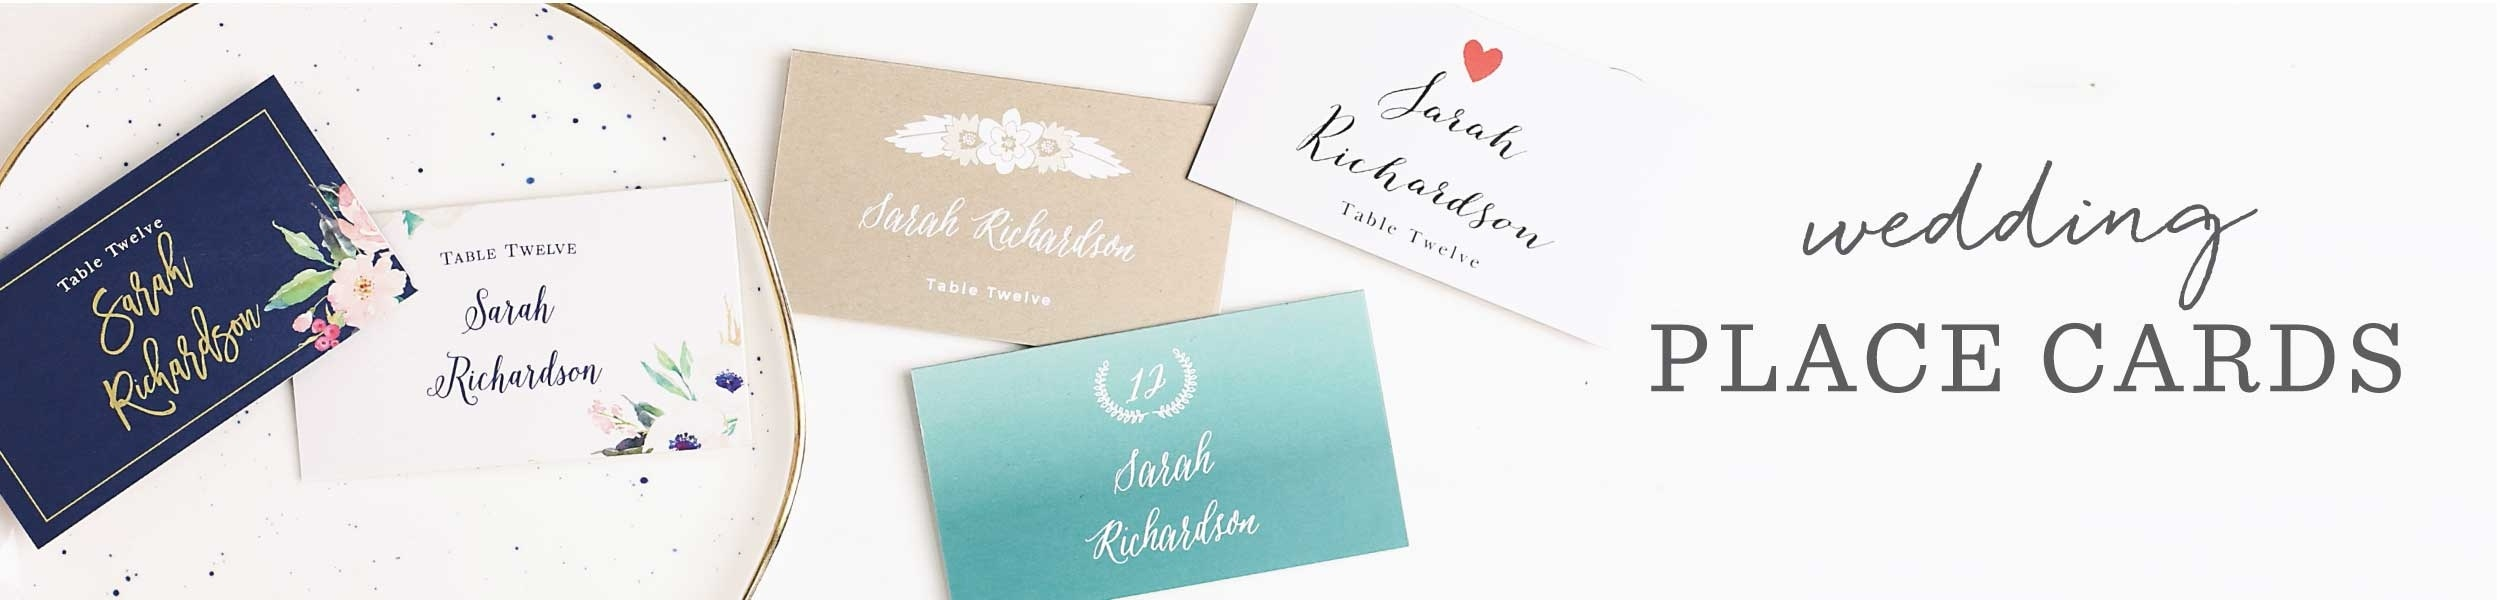 Wedding Place Cards | Free Guest Name Printing! - Basic Invite - Free Printable Damask Place Cards